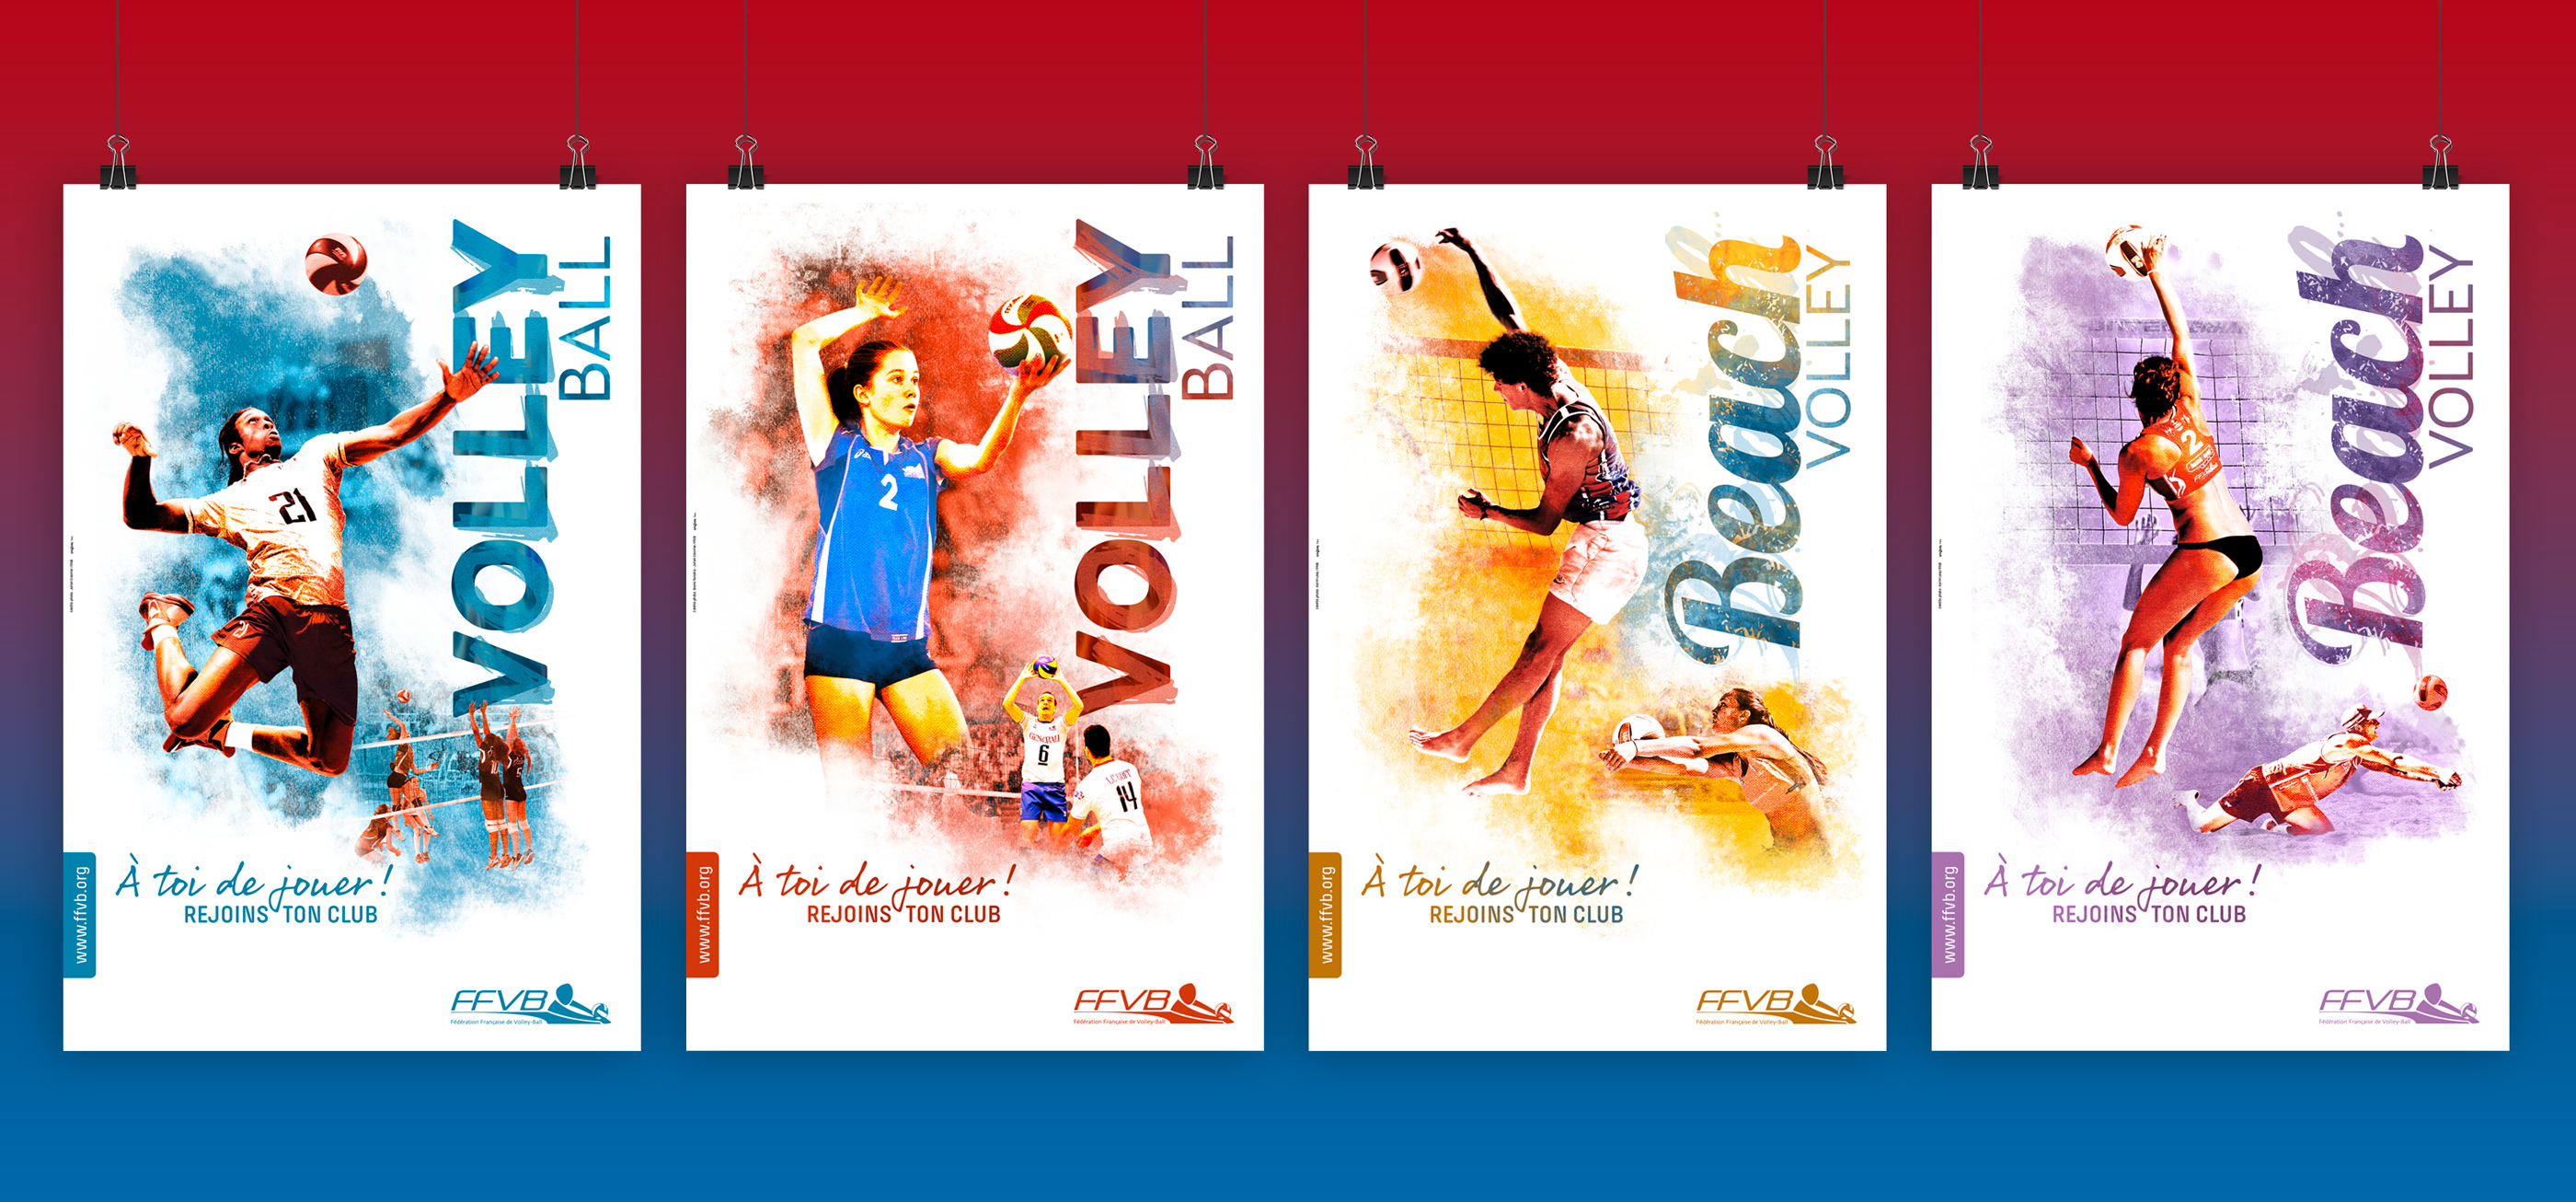 FFVolley-Campagne 4 affiches rentrée clubs